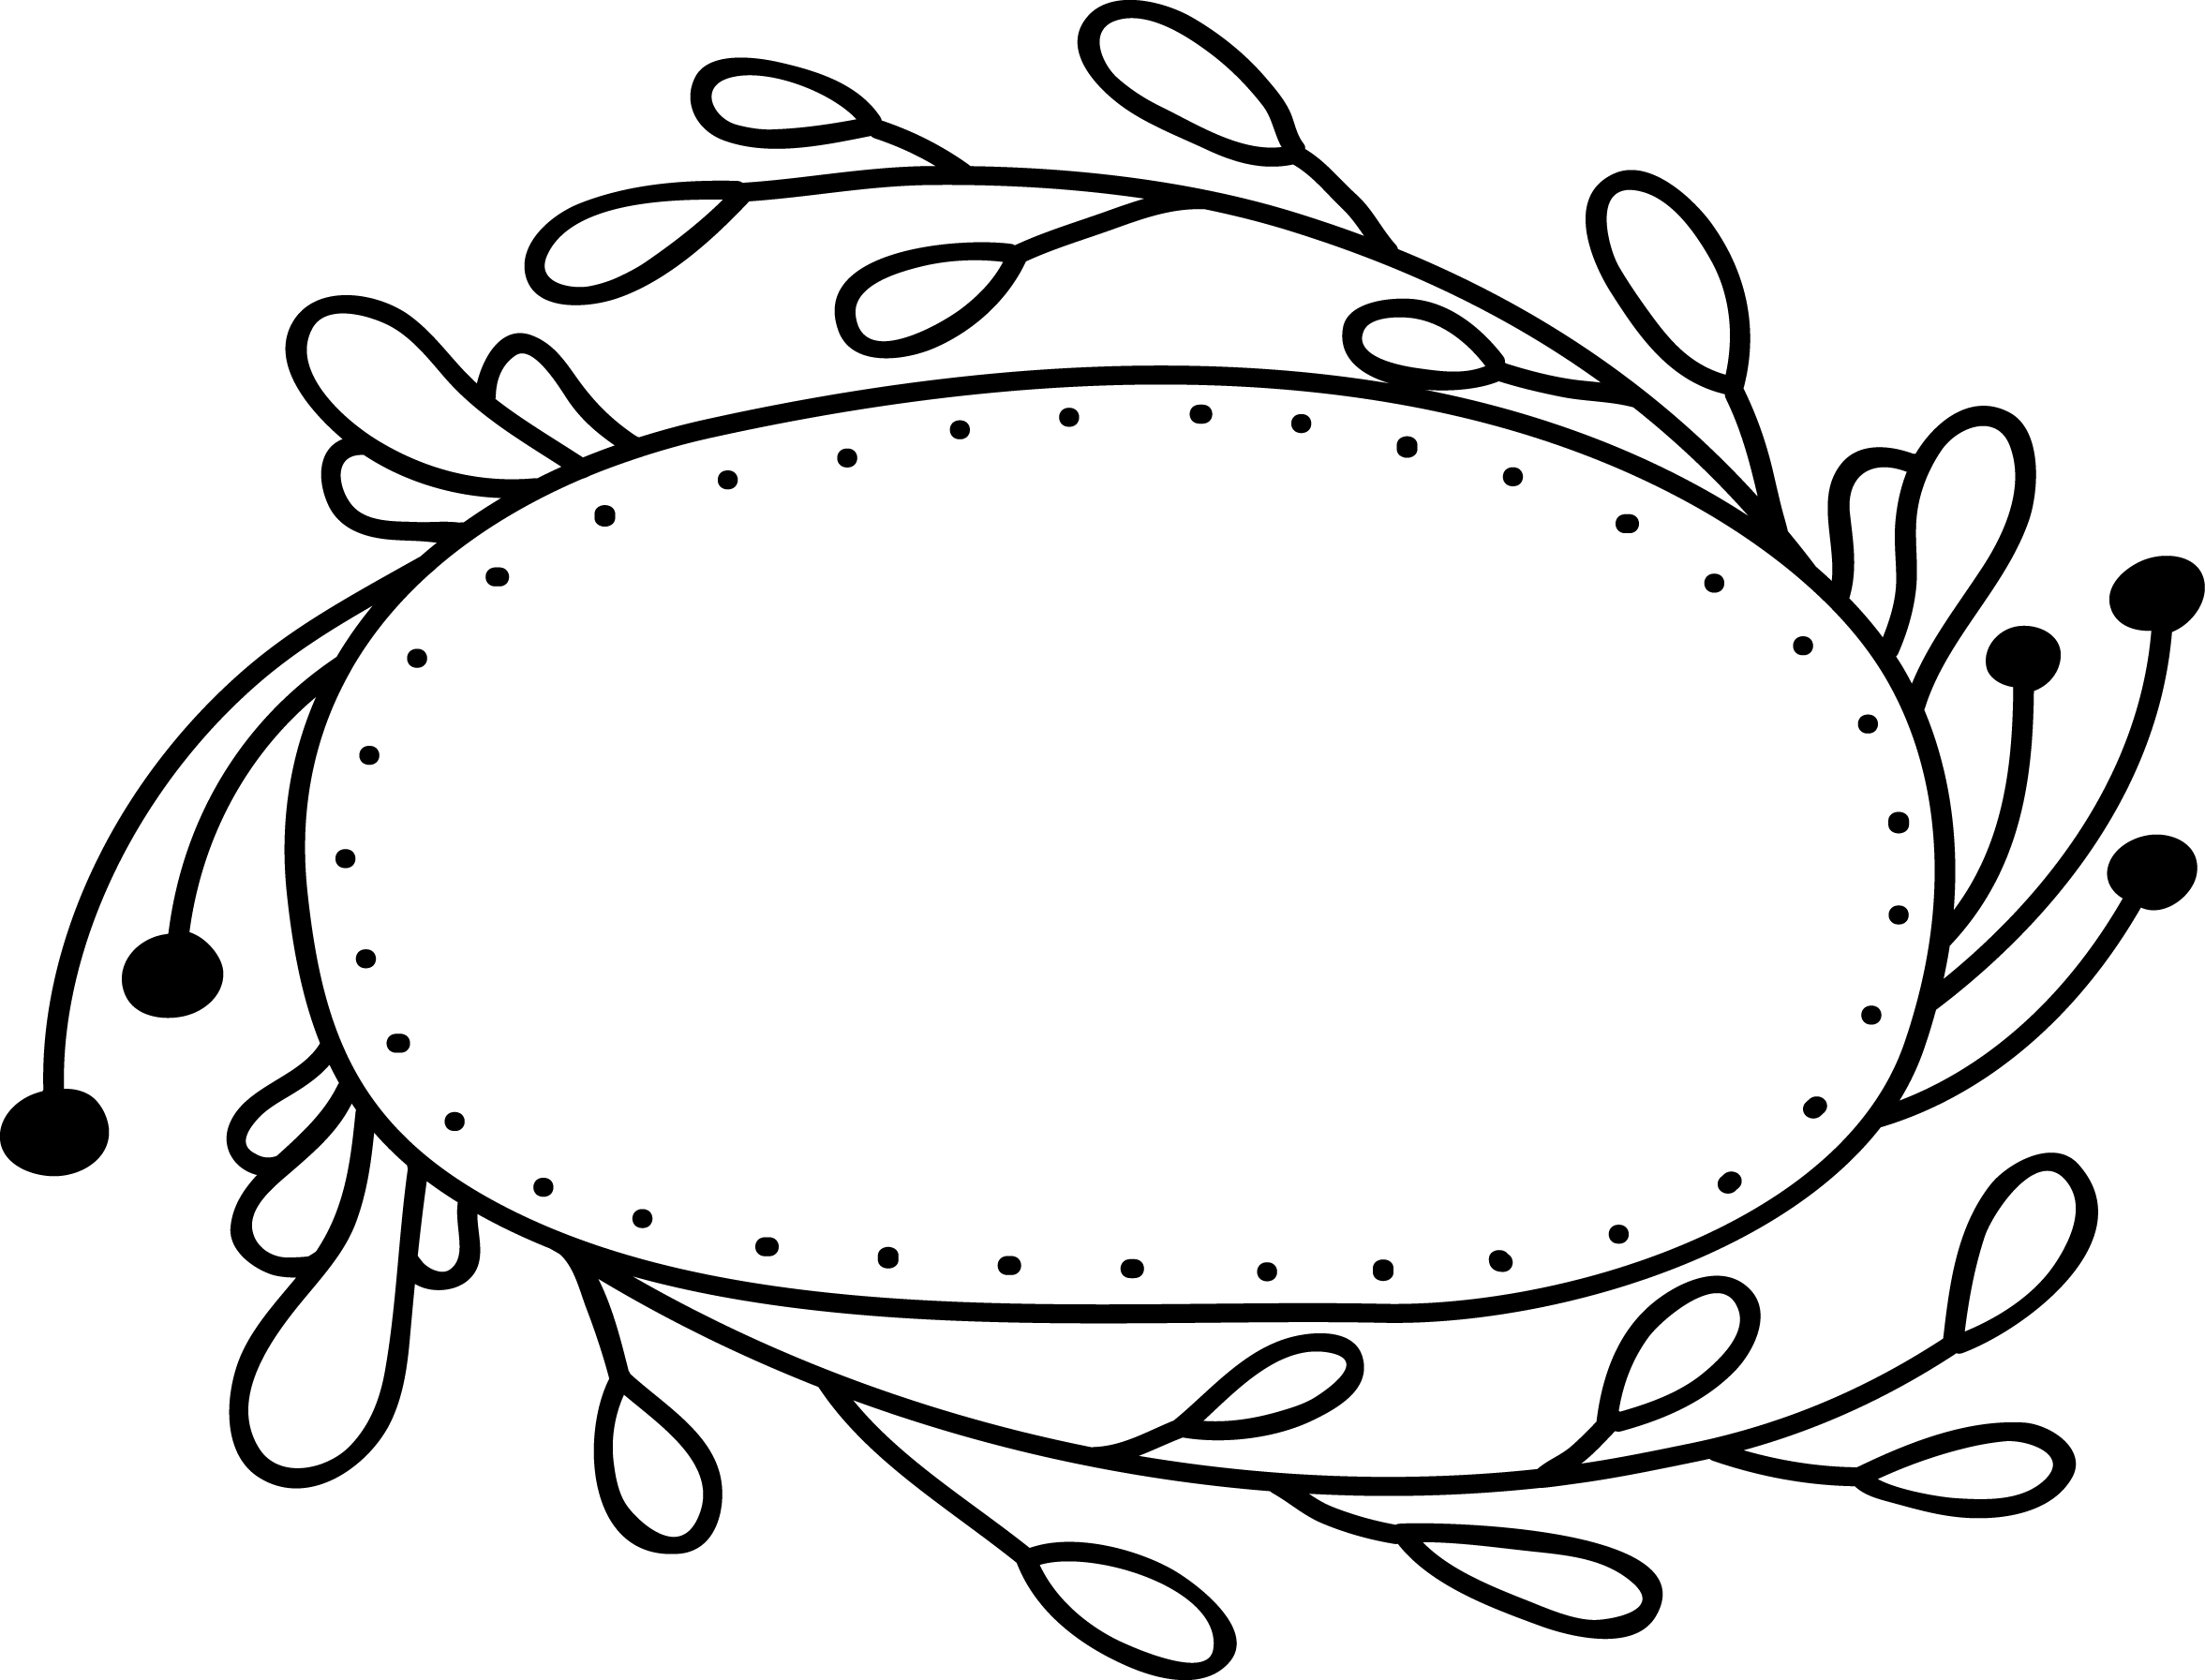 Frame Drawing at GetDrawings.com | Free for personal use Frame ...